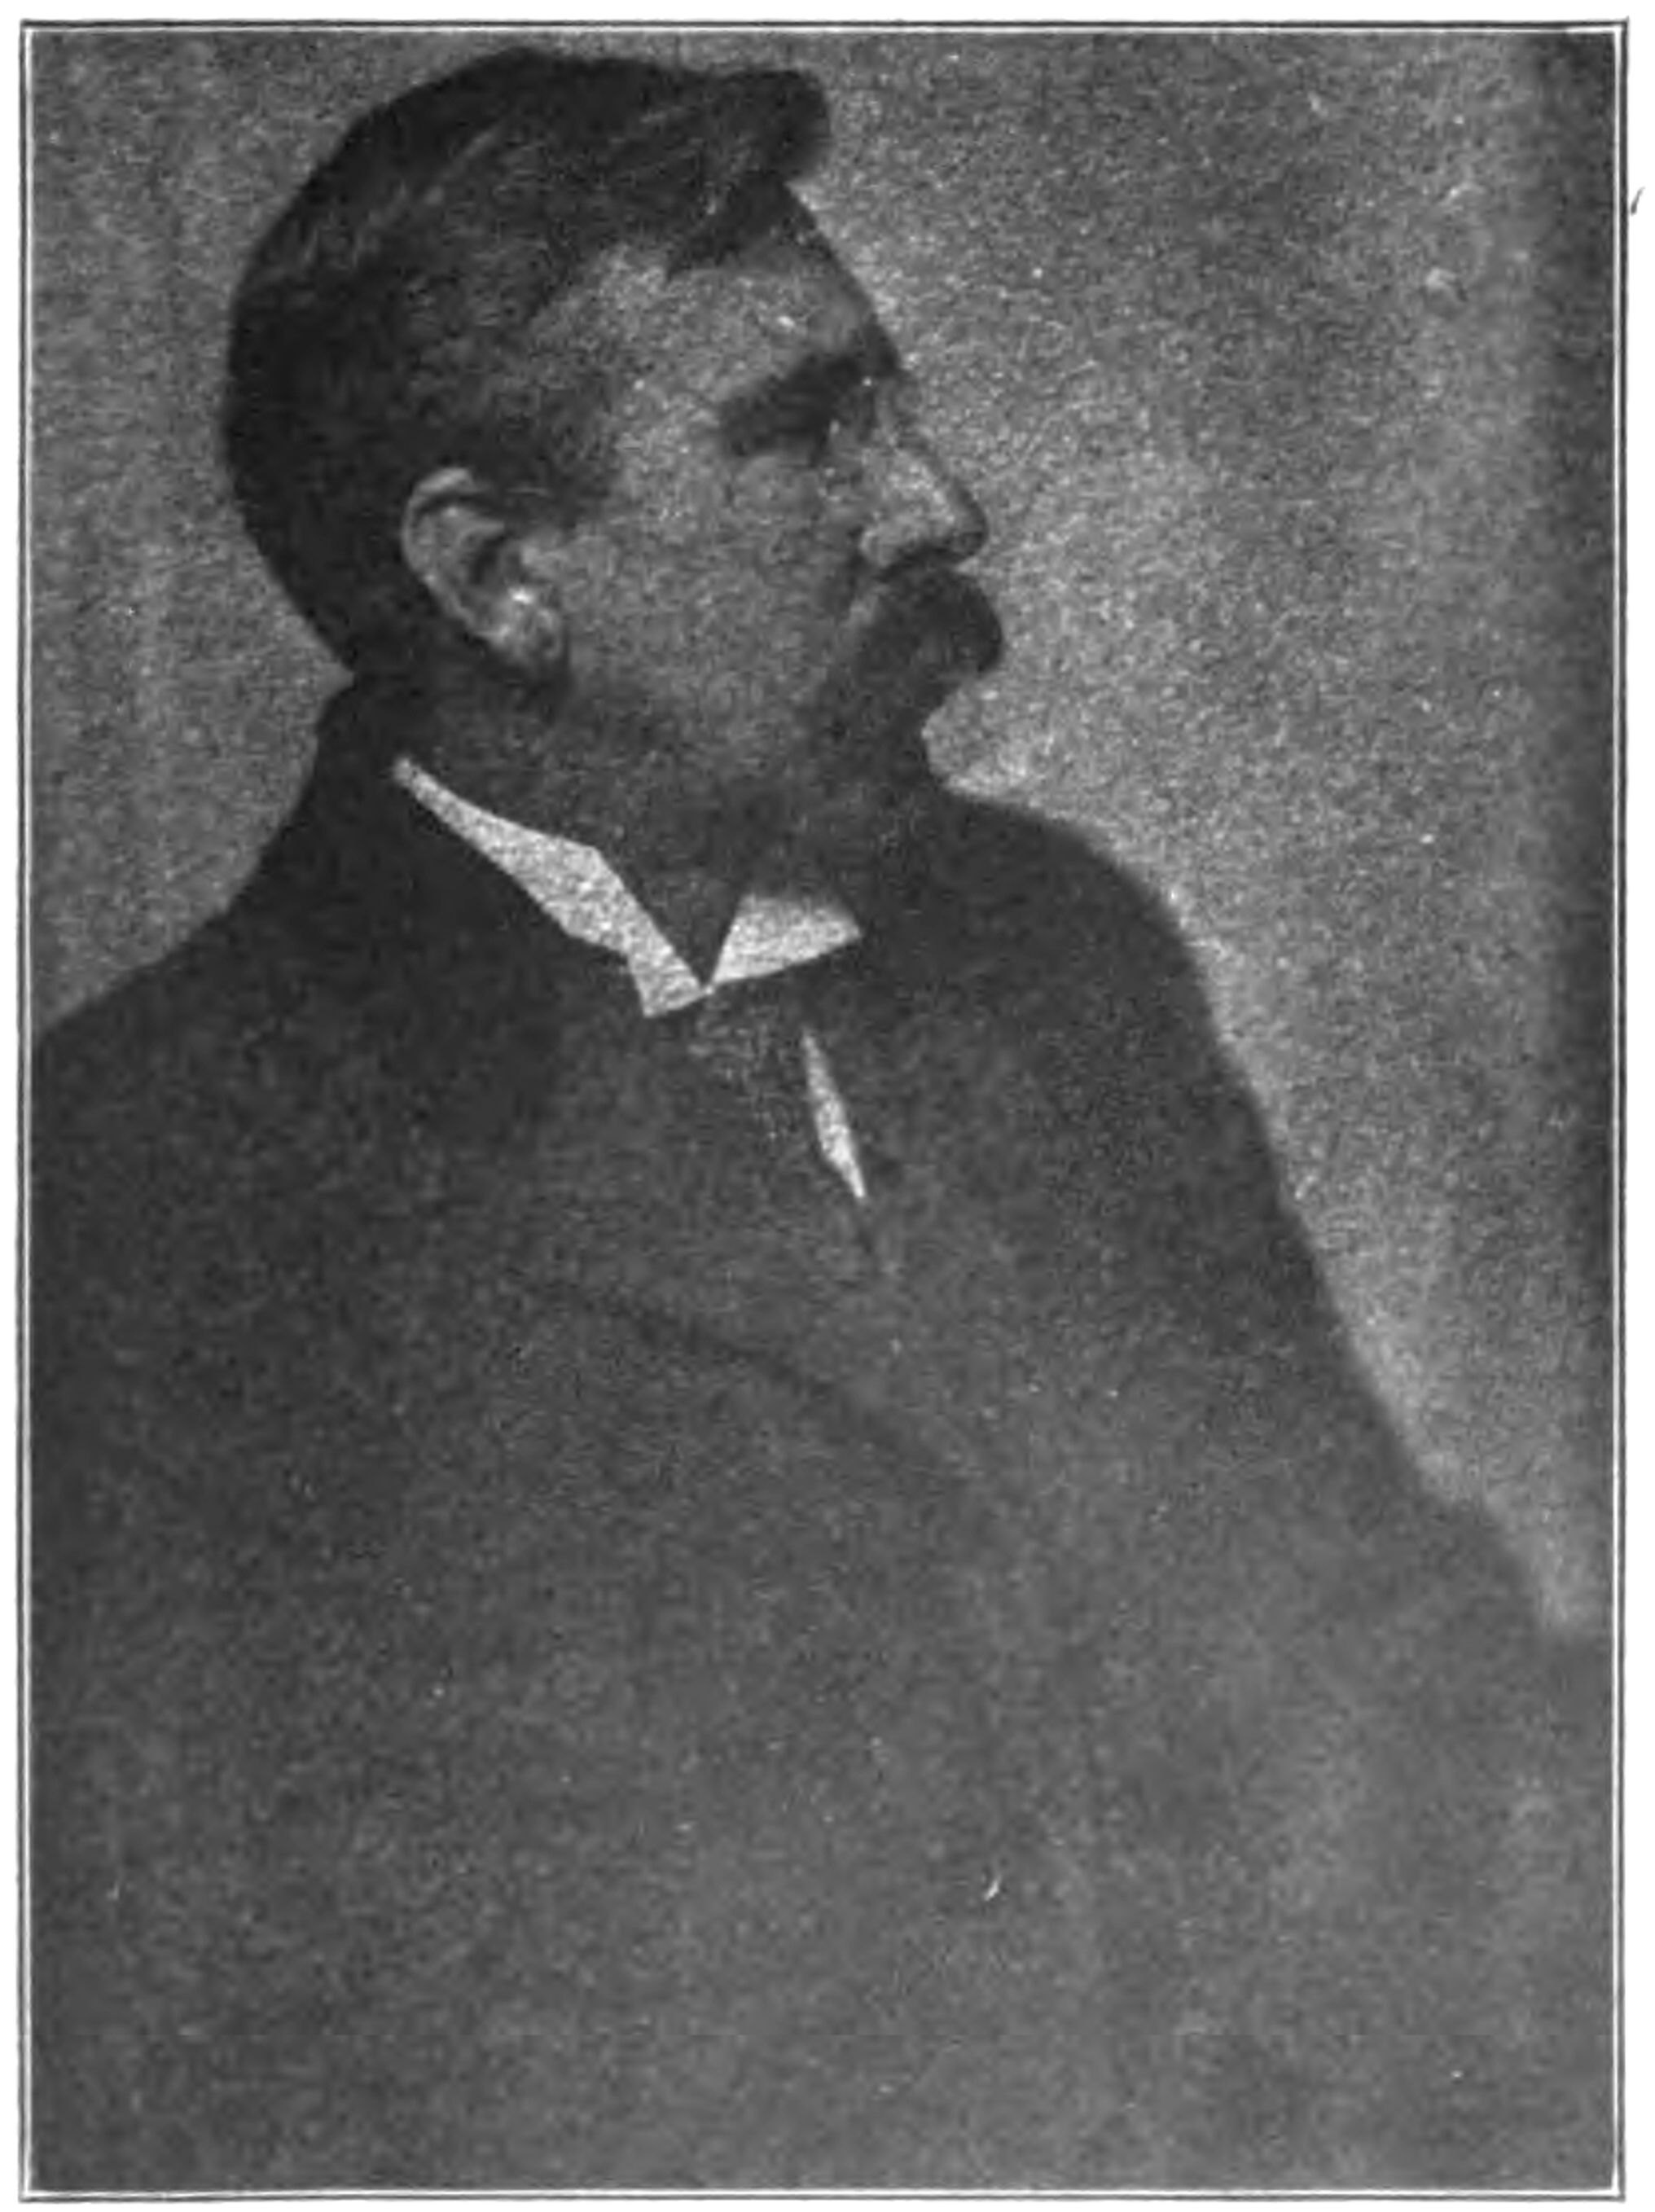 Image of Charles Henry Caffin from Wikidata